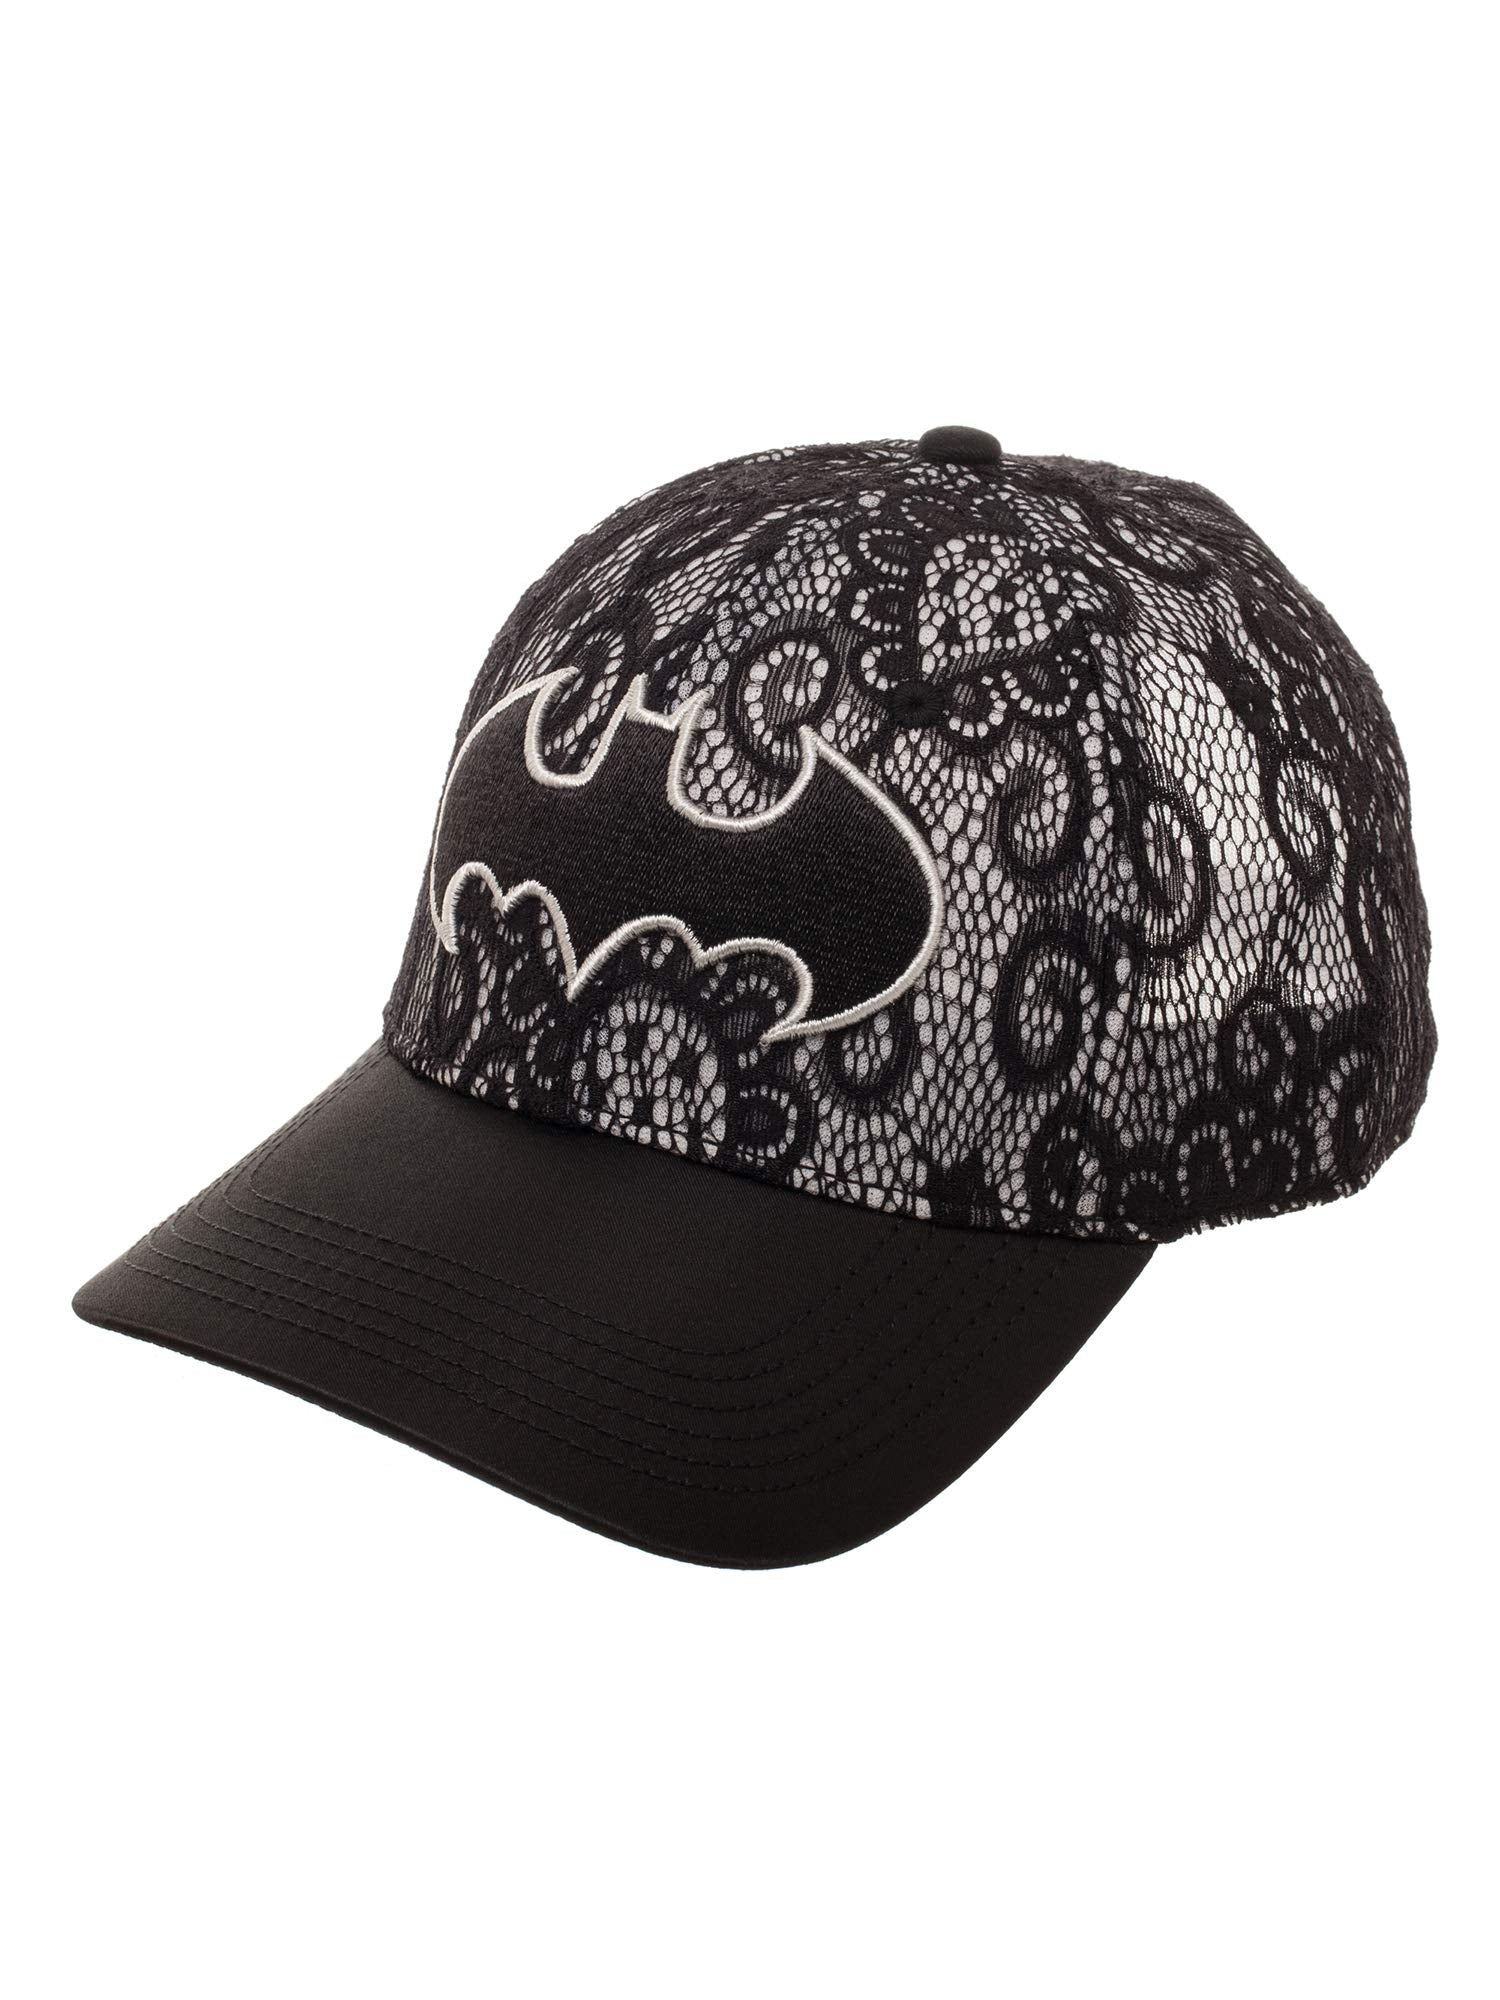 DC Comics Batman Women's Lace Baseball Hat with Curved Bill